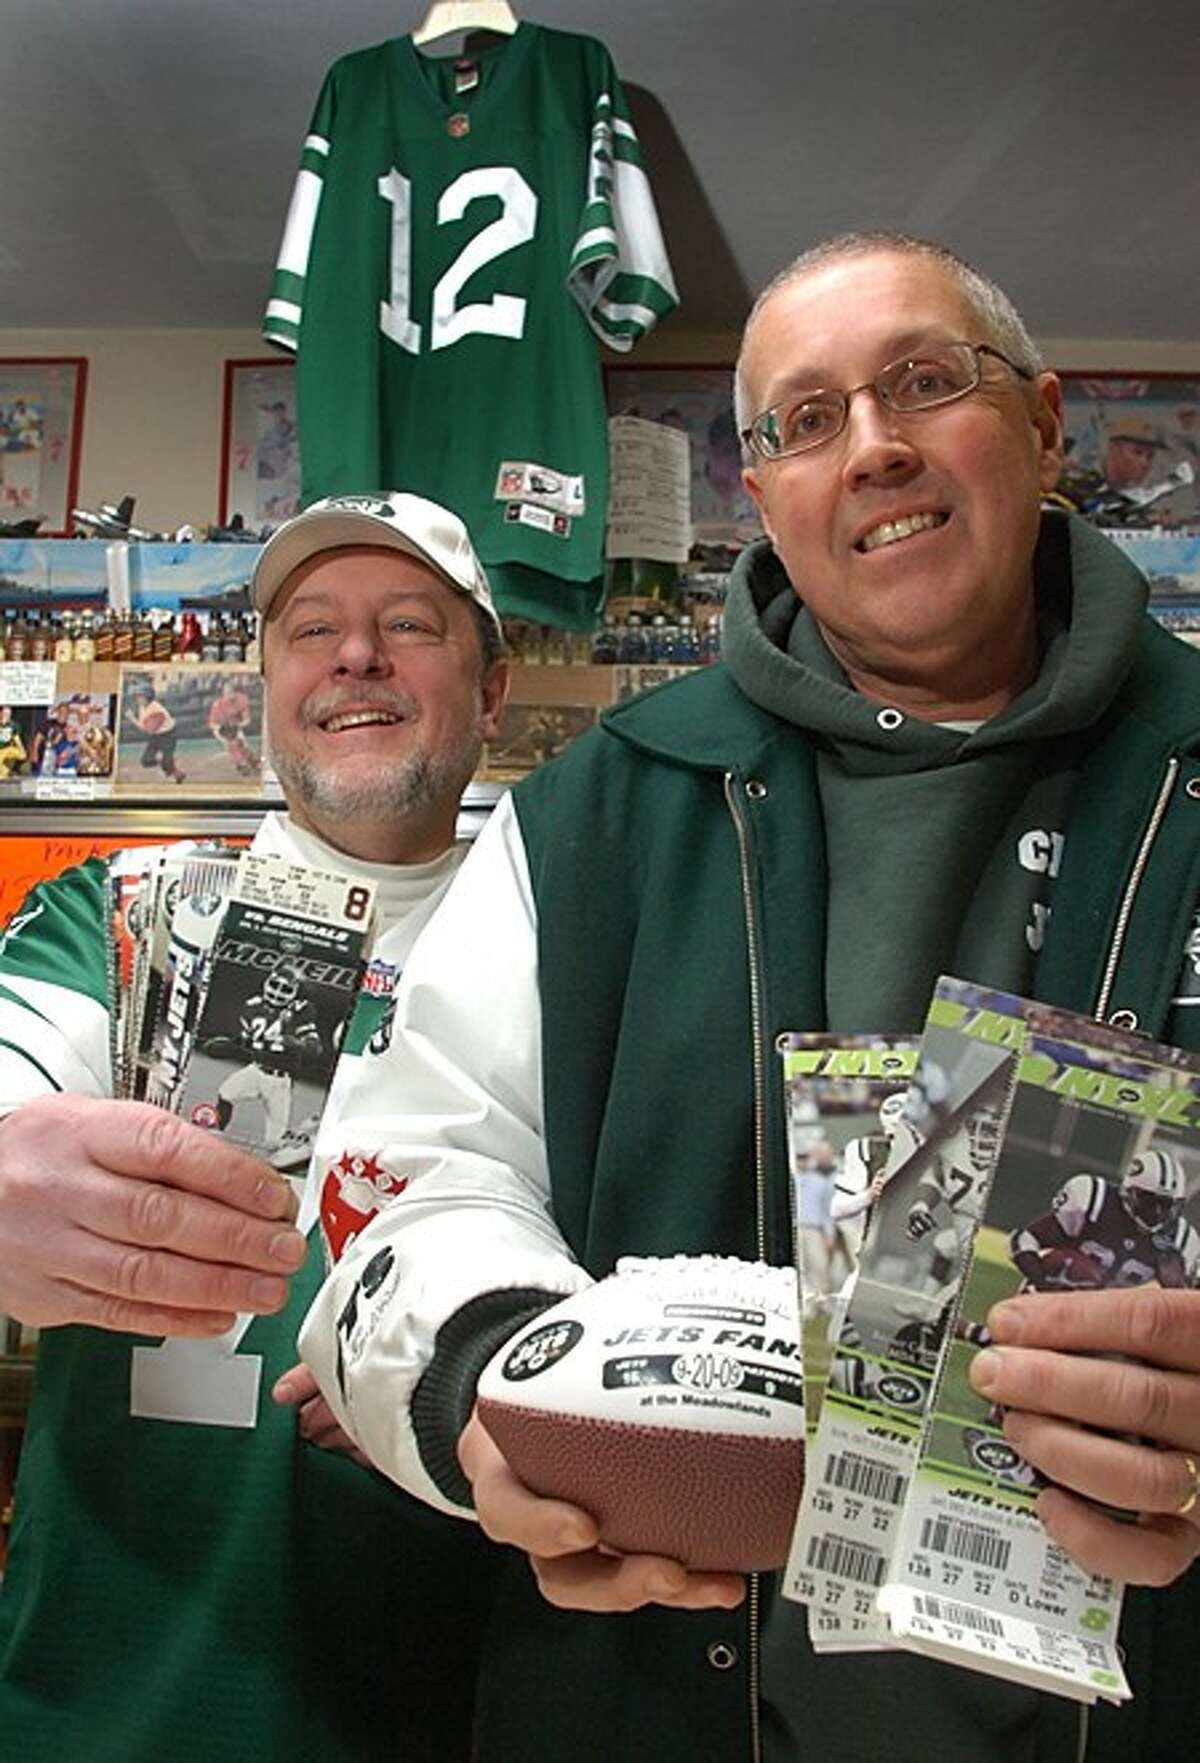 Jim and Bob Macedo of New Canaan Ave Liquor are the consummate Jets fans. Hour photo / Erik Trautmann